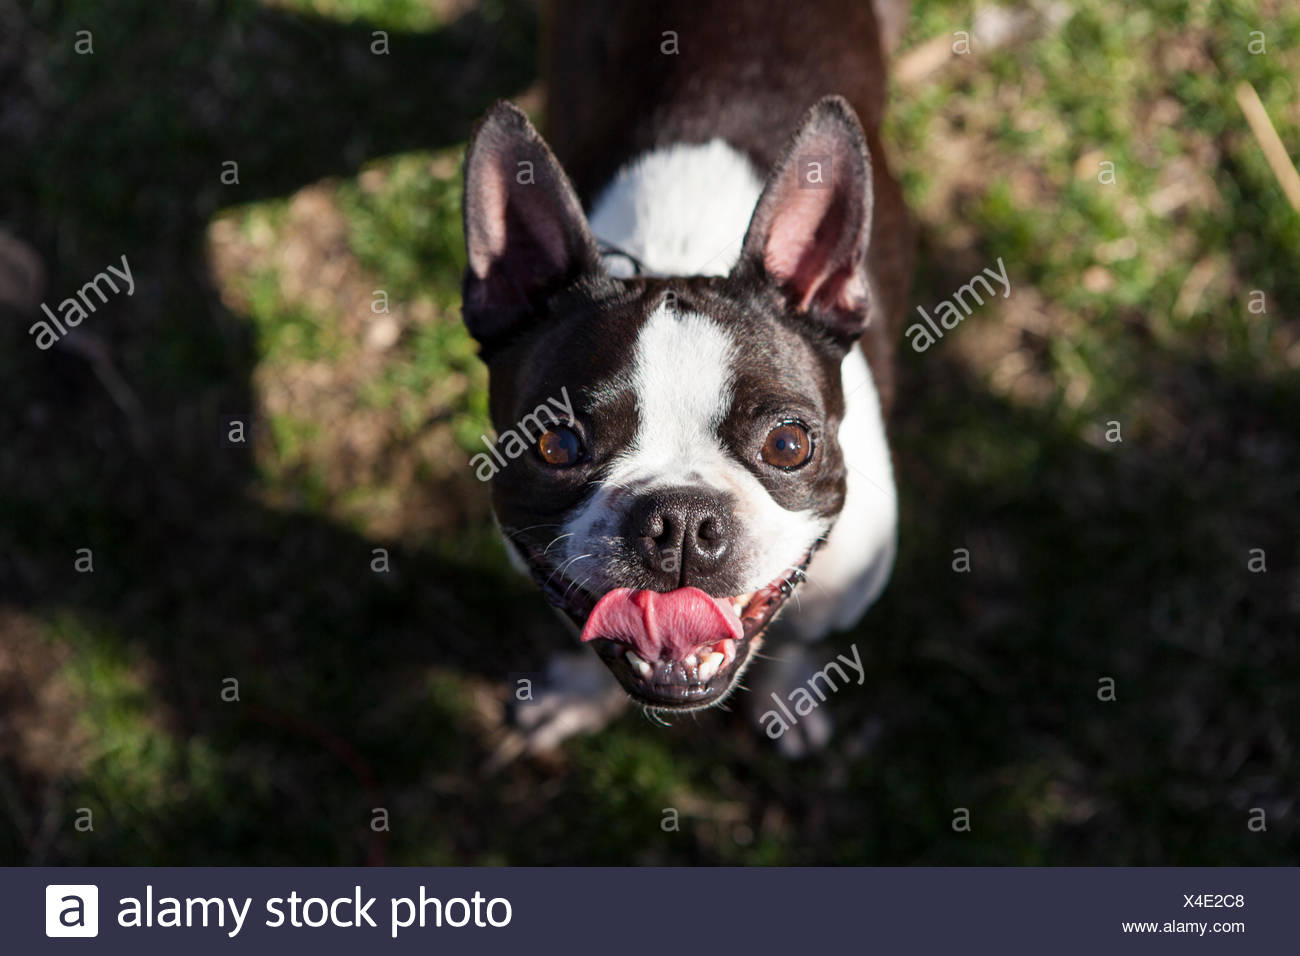 A young Boston Terrier plays in her backyard and smiles at the camera. - Stock Image